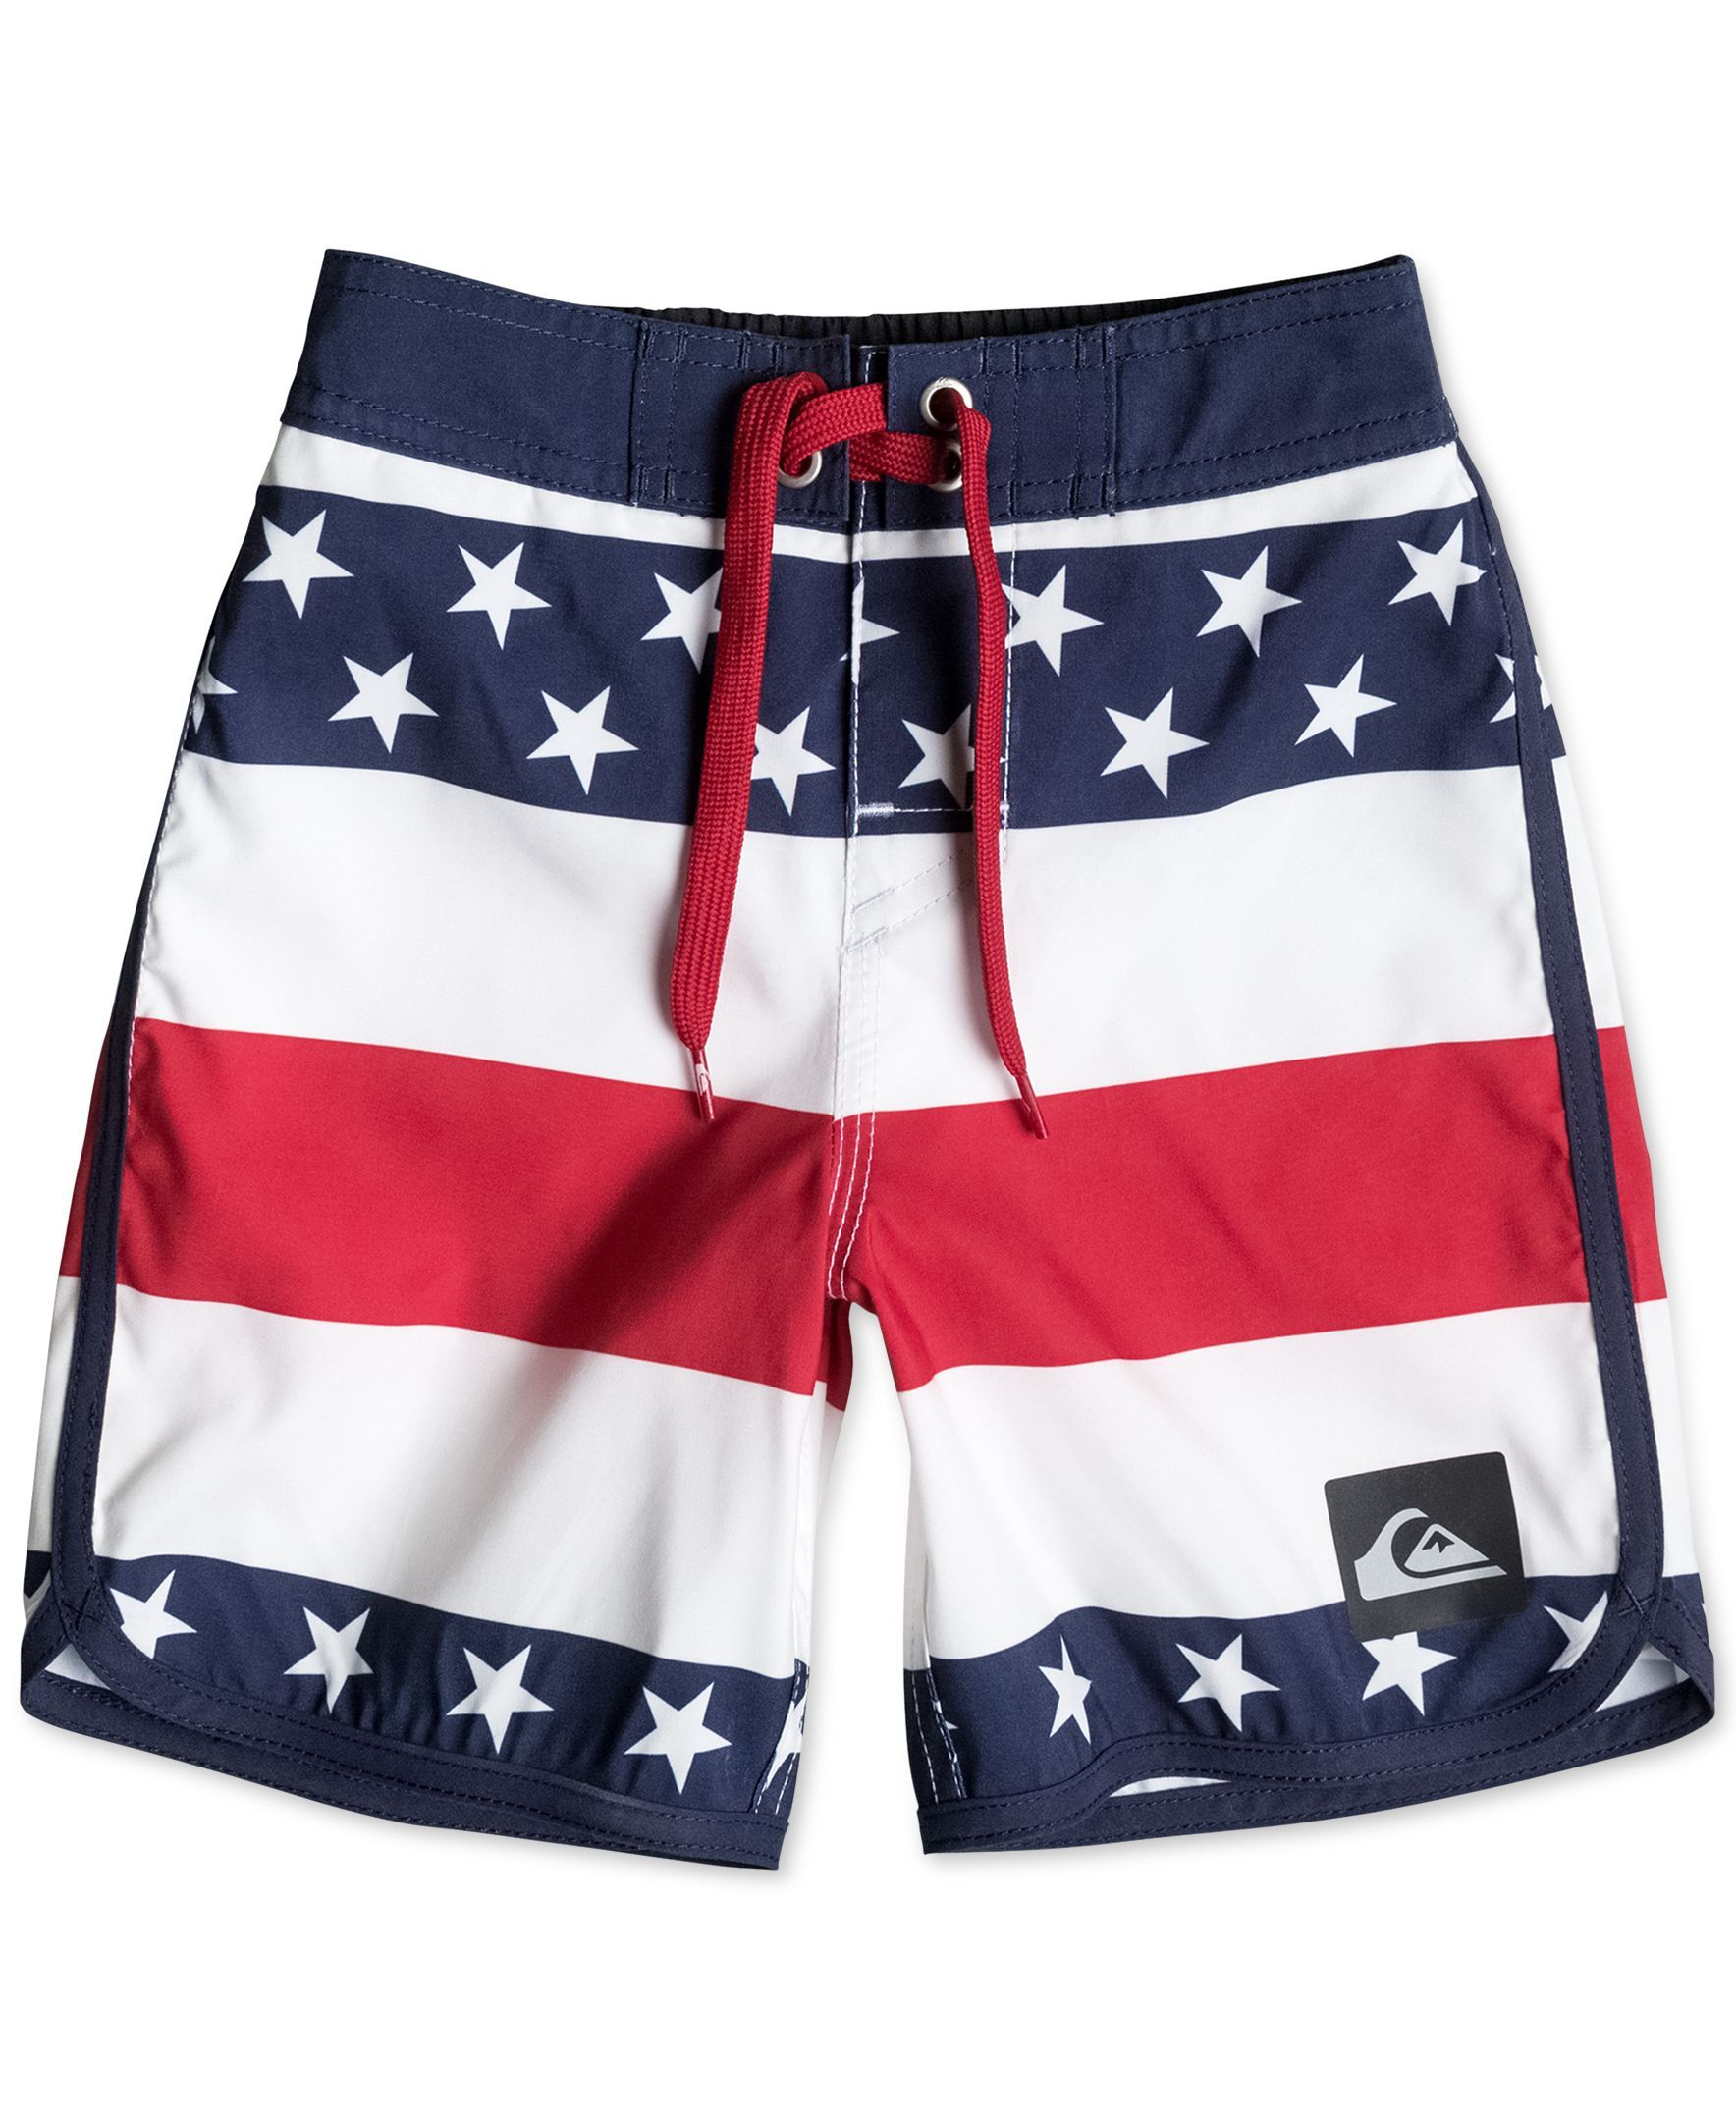 946560a58c Quiksilver Boys' 4th of July Boardshorts | Products | Kids swimwear ...